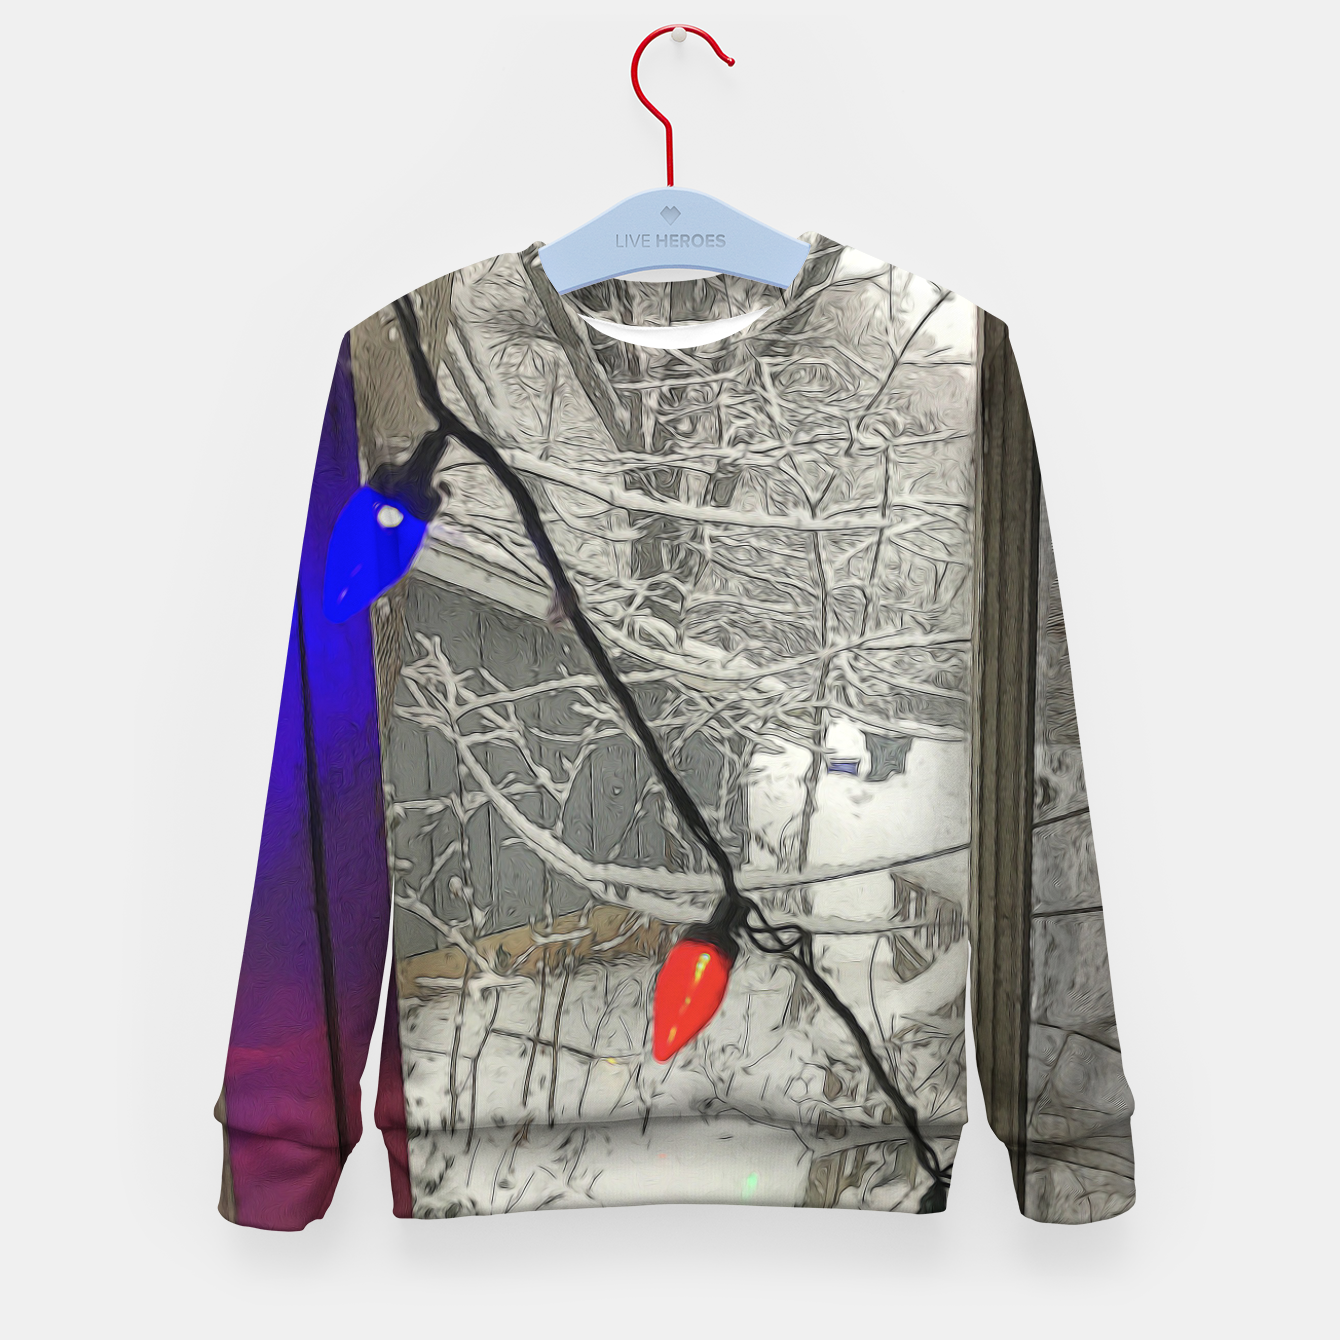 Imagen de Home For The Holidays Kid's sweater - Live Heroes